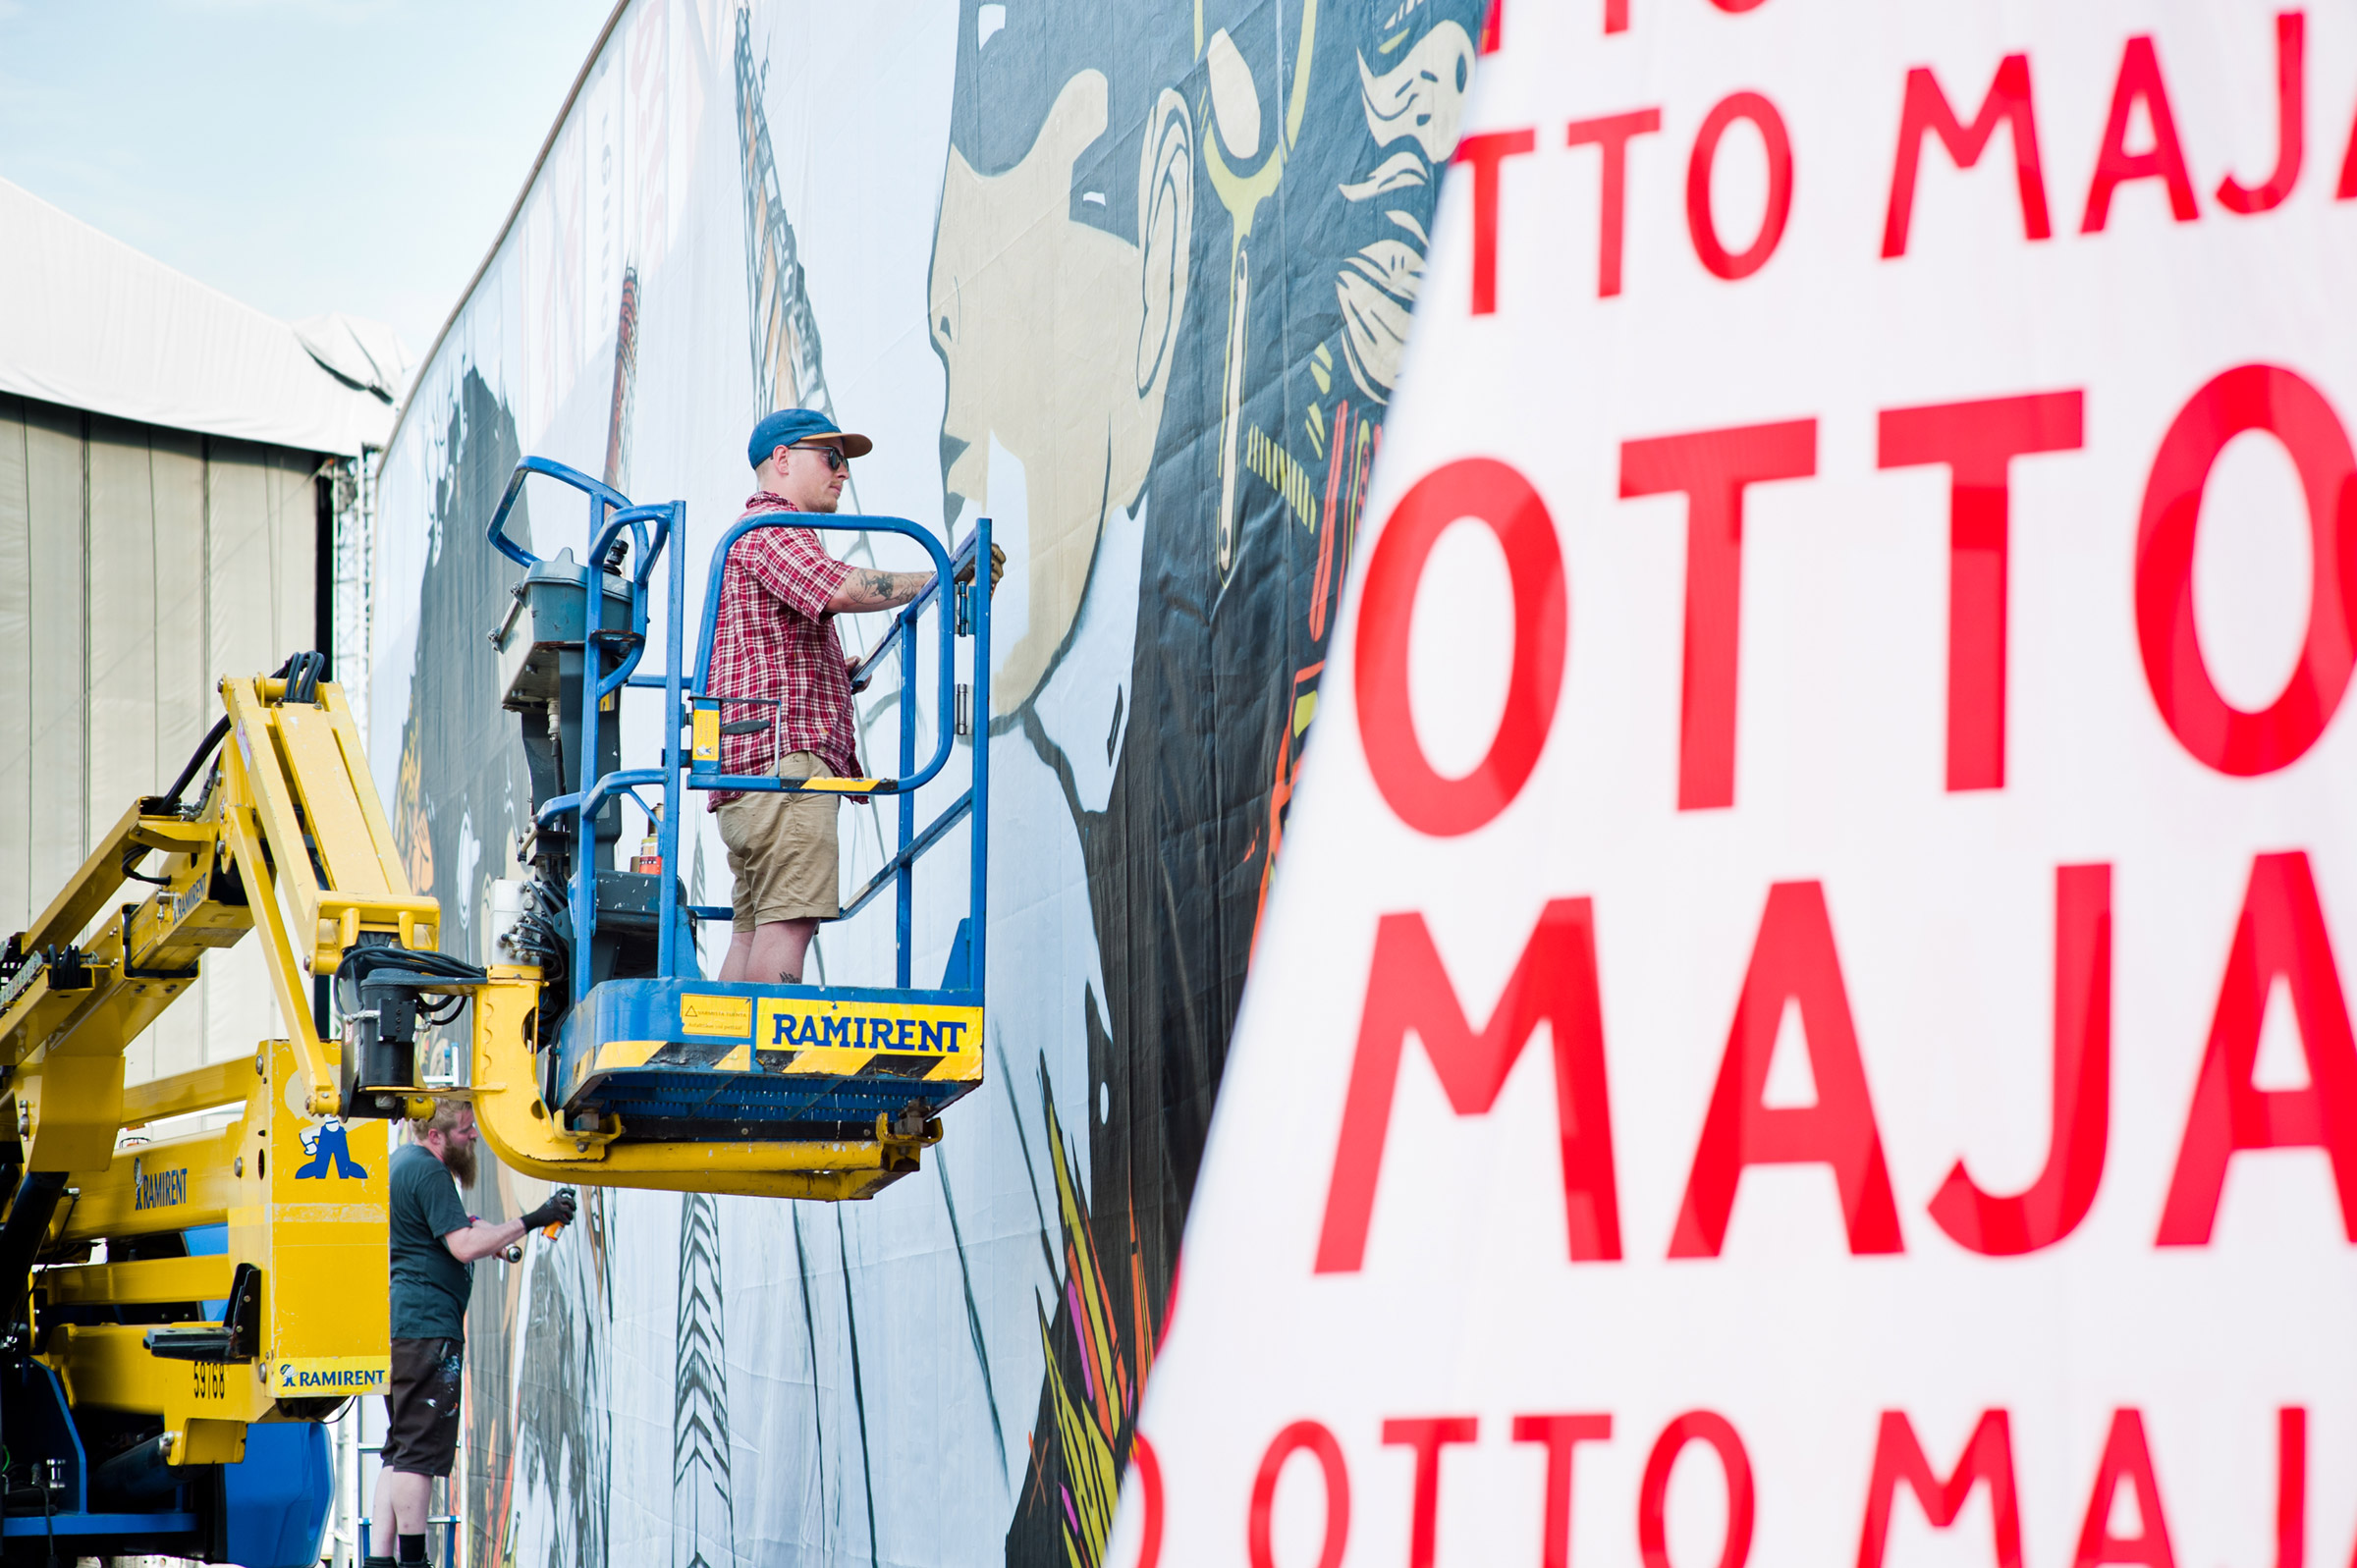 Otto Maja painting his art piece at Flow Festival 2013